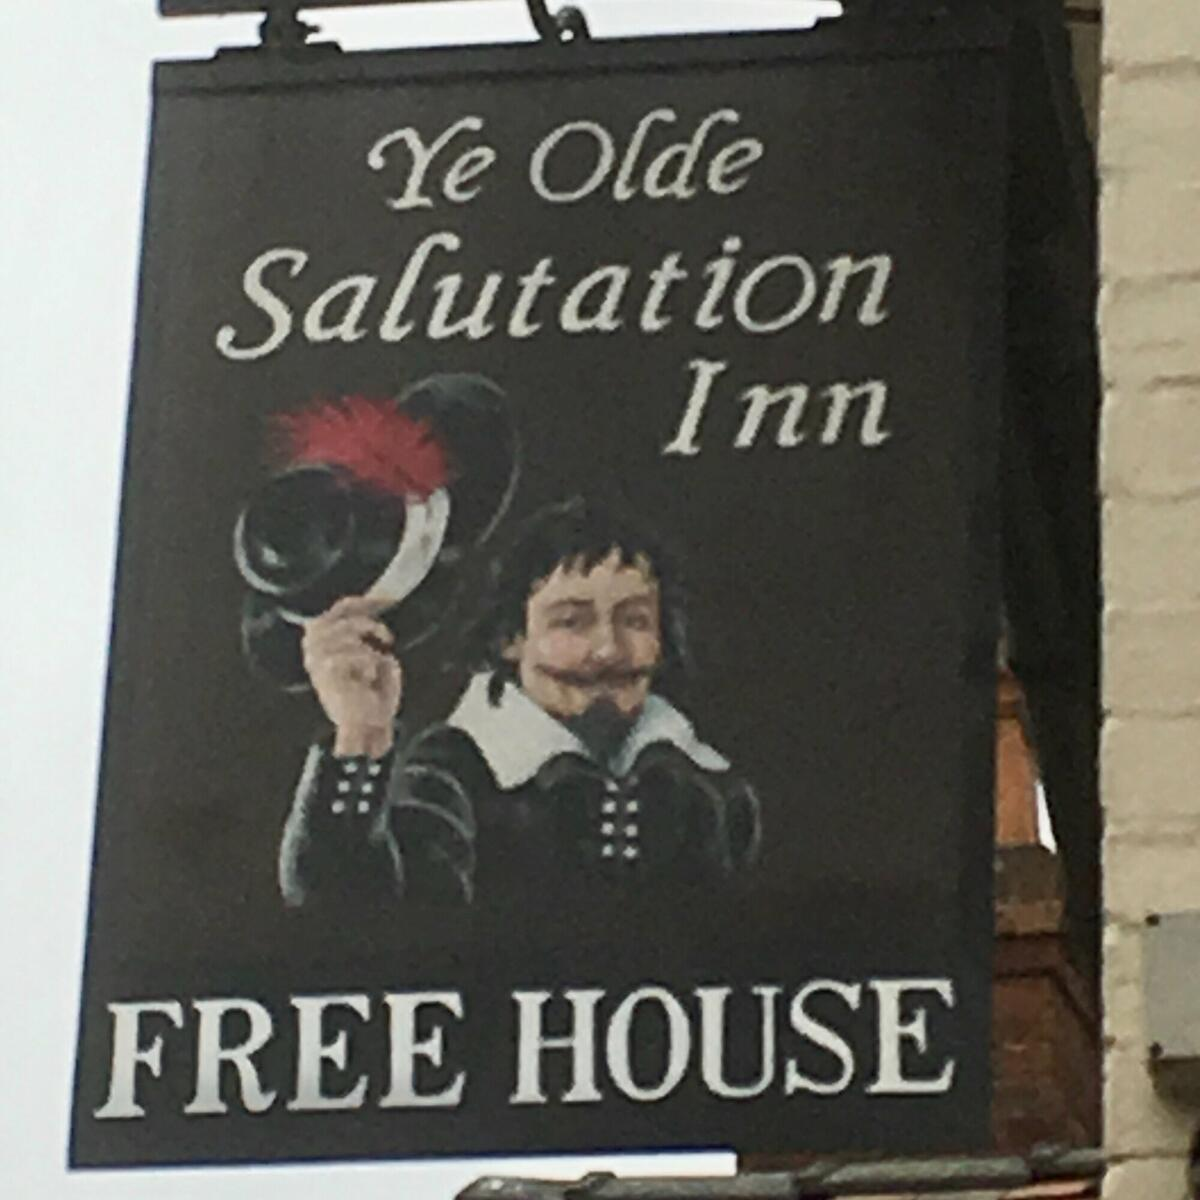 My pub sign, painted by a local artist